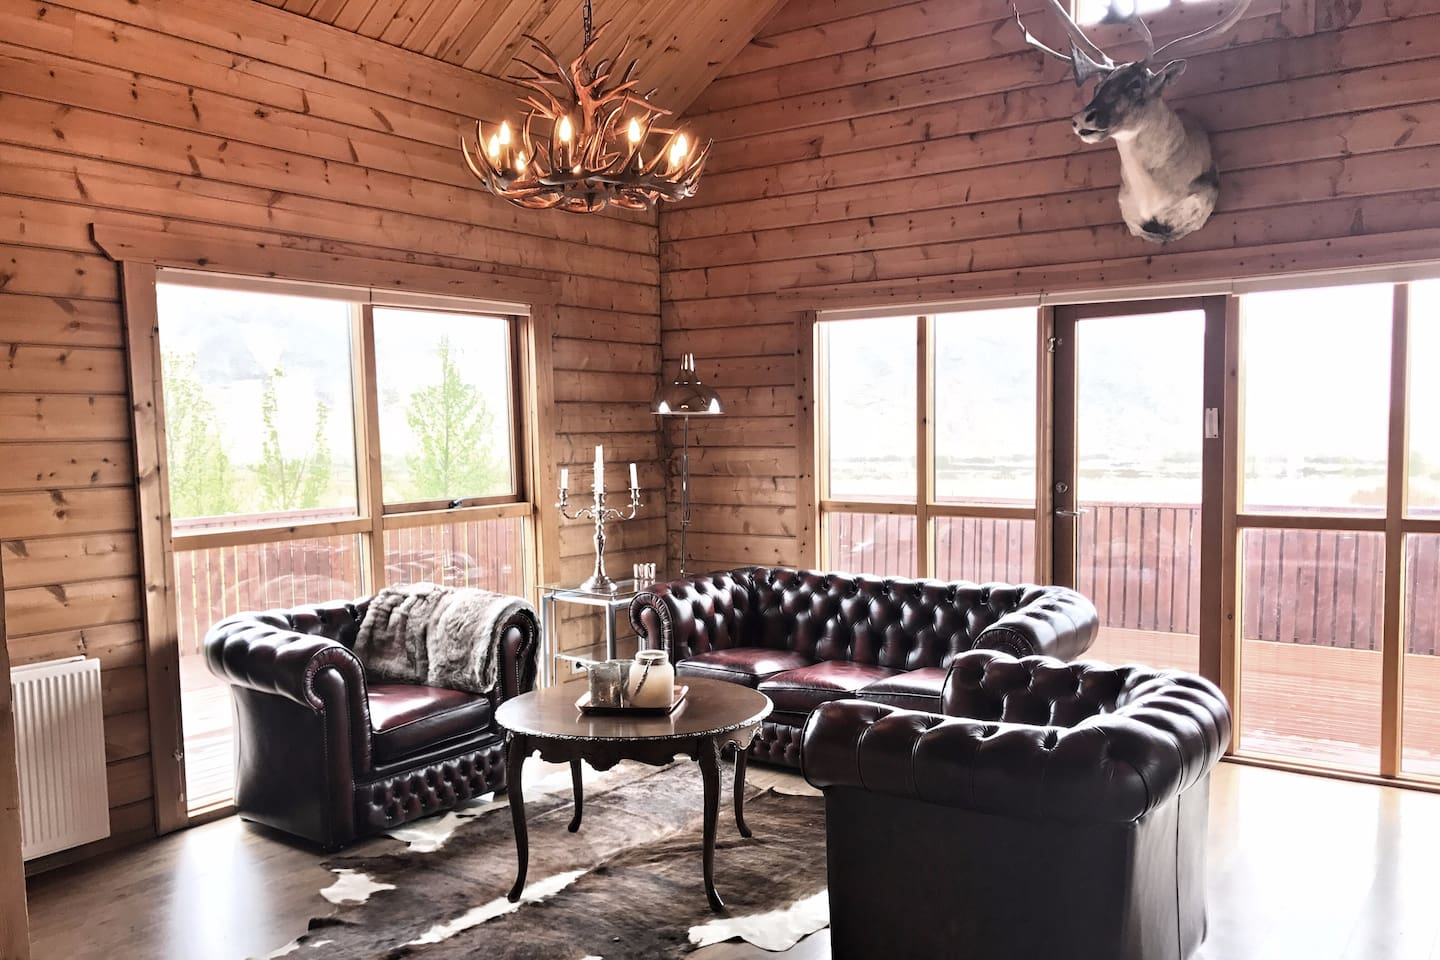 Chic, comfortable, rustic and cozy! Everything you would want in a cabin